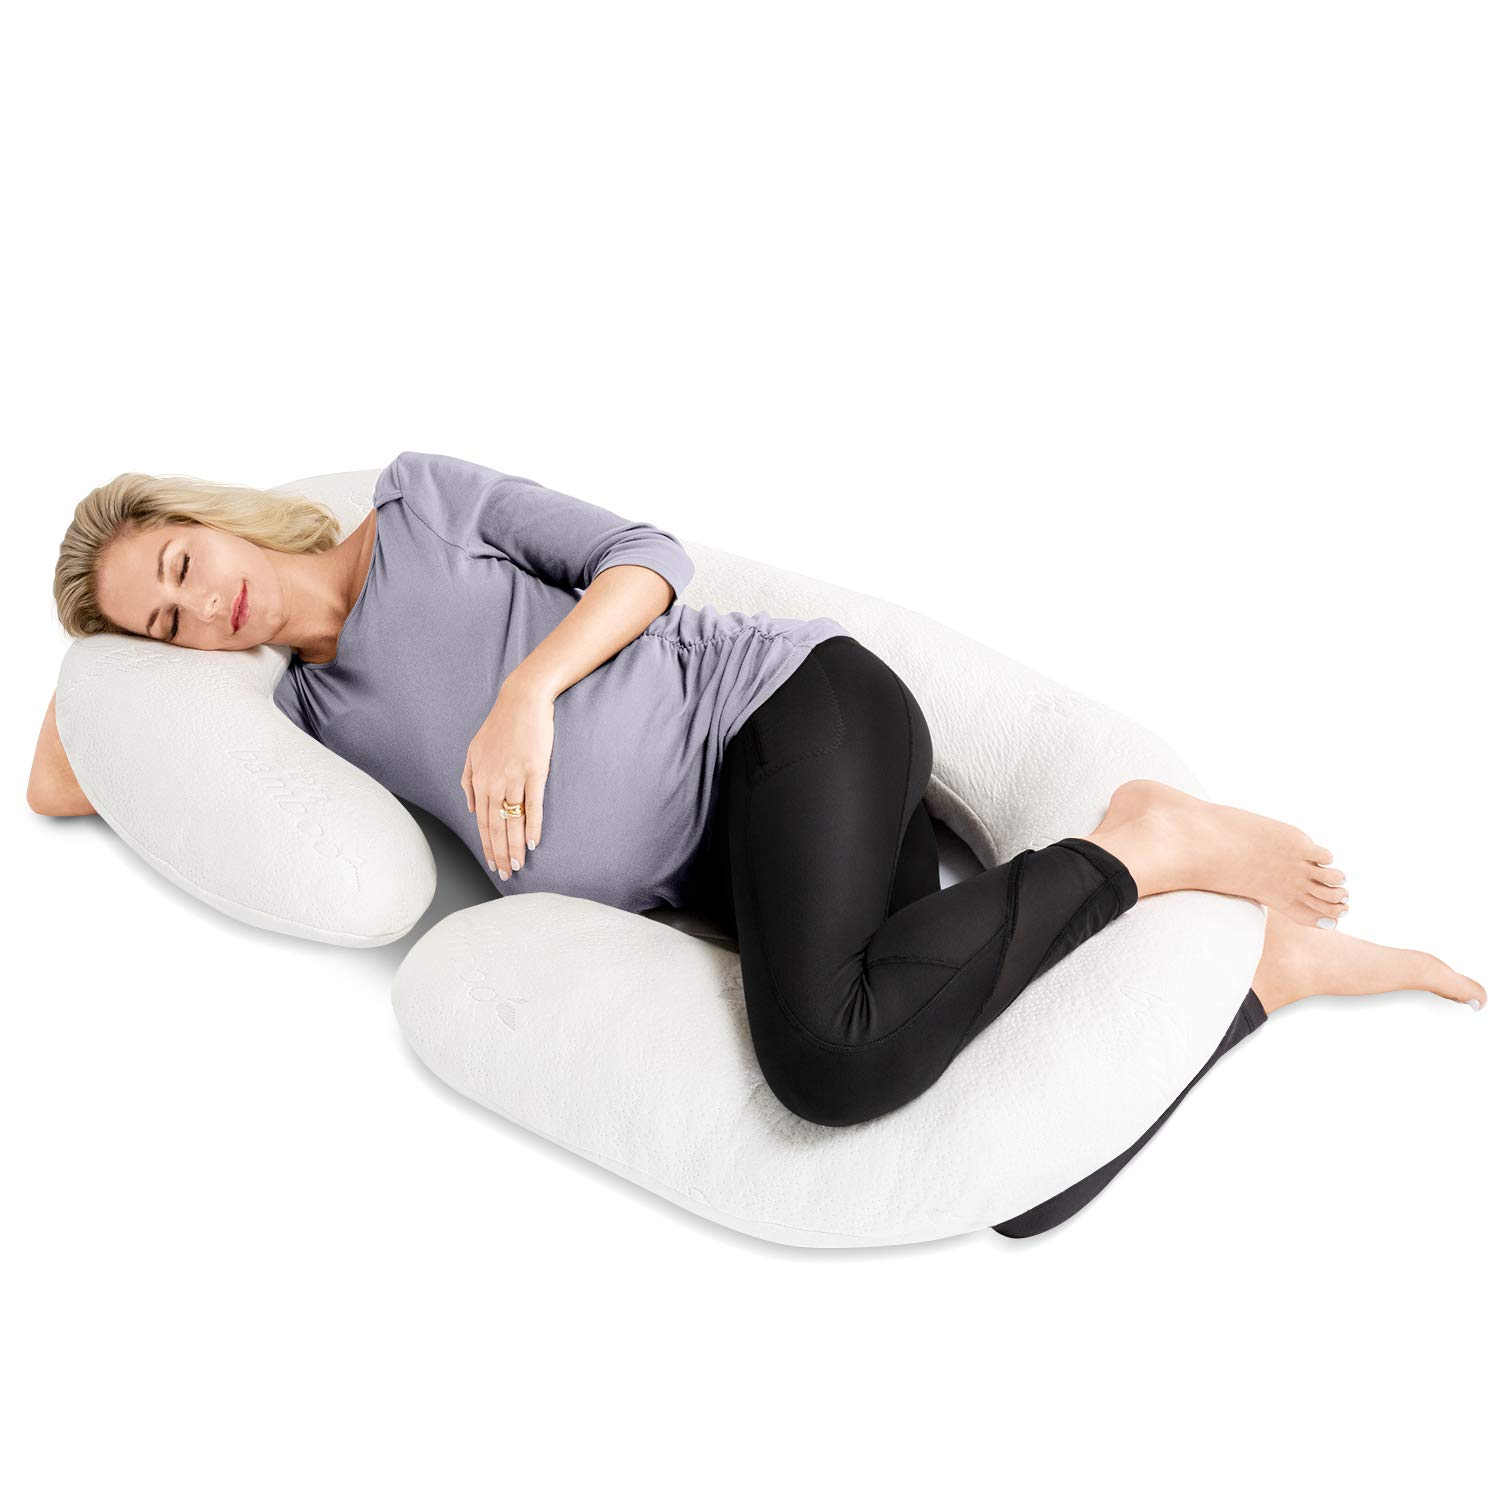 Zen Bamboo Full Body Pregnancy Pillow - Maternity & Nursing Support Cushion & Body Pillow with Ultra-Soft, Washable Rayon from Bamboo Blend Cover ZB-PRGNNCYPILLW